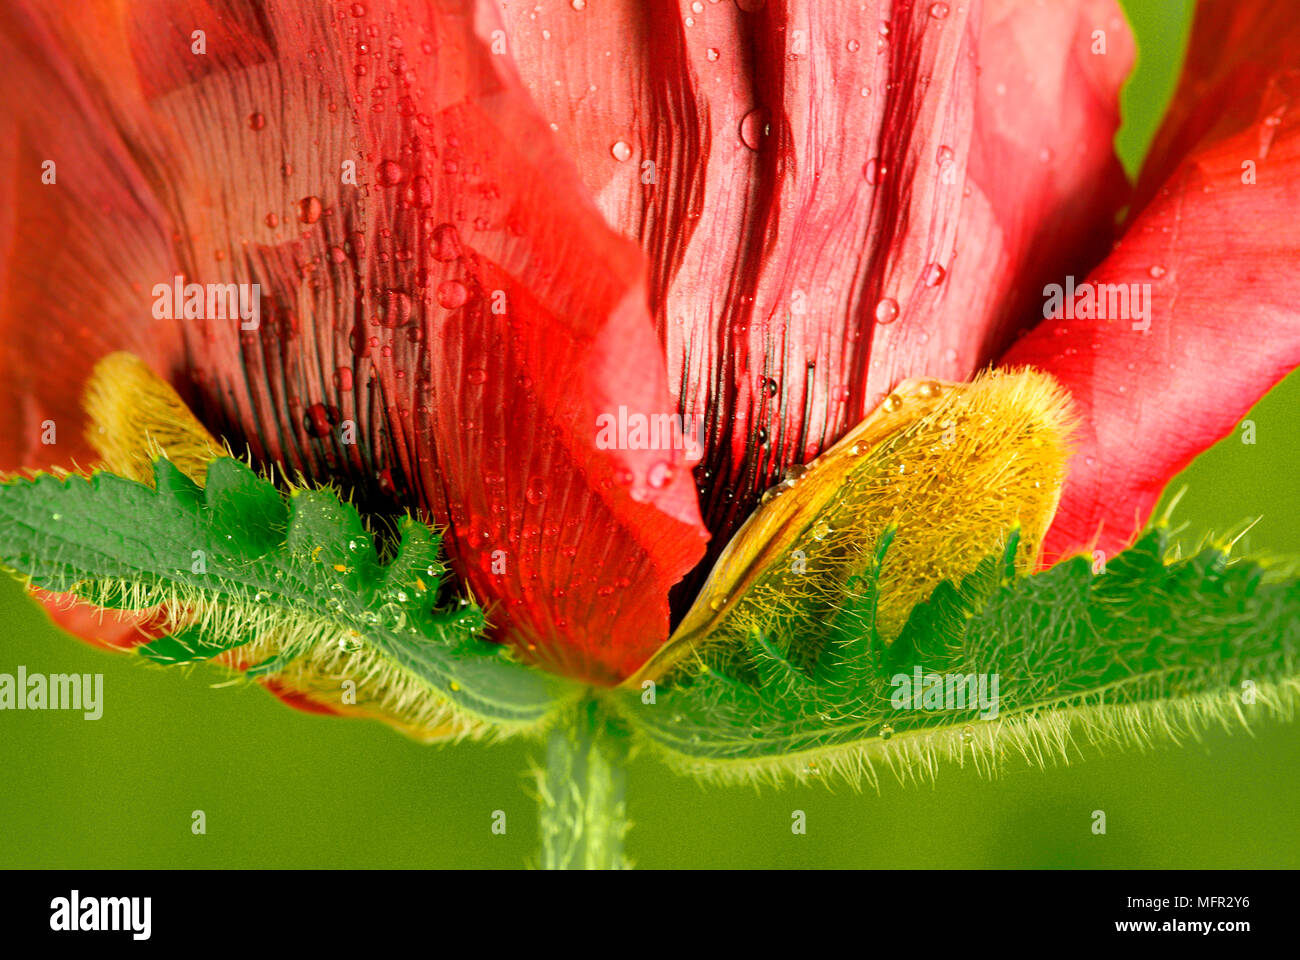 Shiny petals of the underside of Patty's plum poppy, showing the hairy leaves and the calyx. - Stock Image